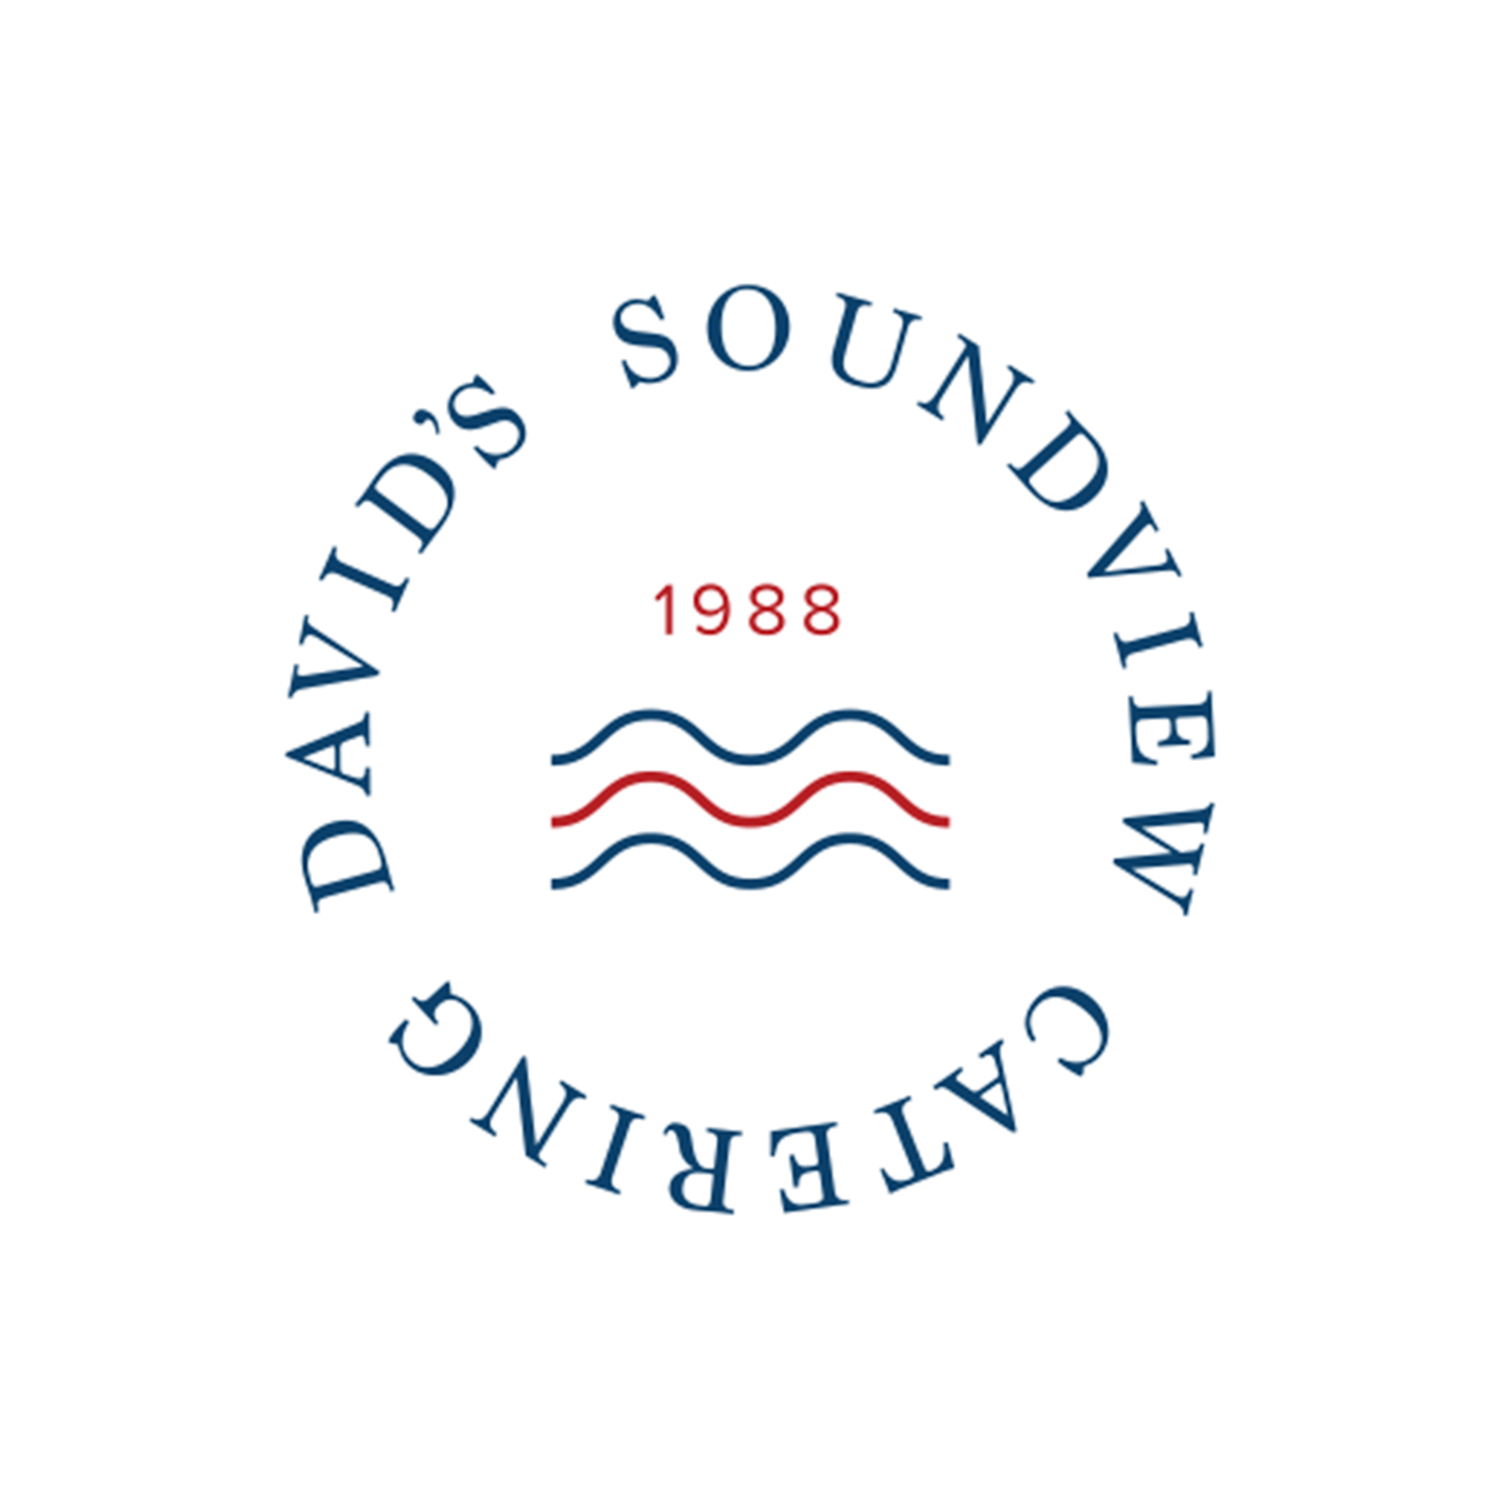 David's Soundview Catering : talented team of chefs offer an extensive and delicious selection of seasonal favorites and globally inspired cuisine.